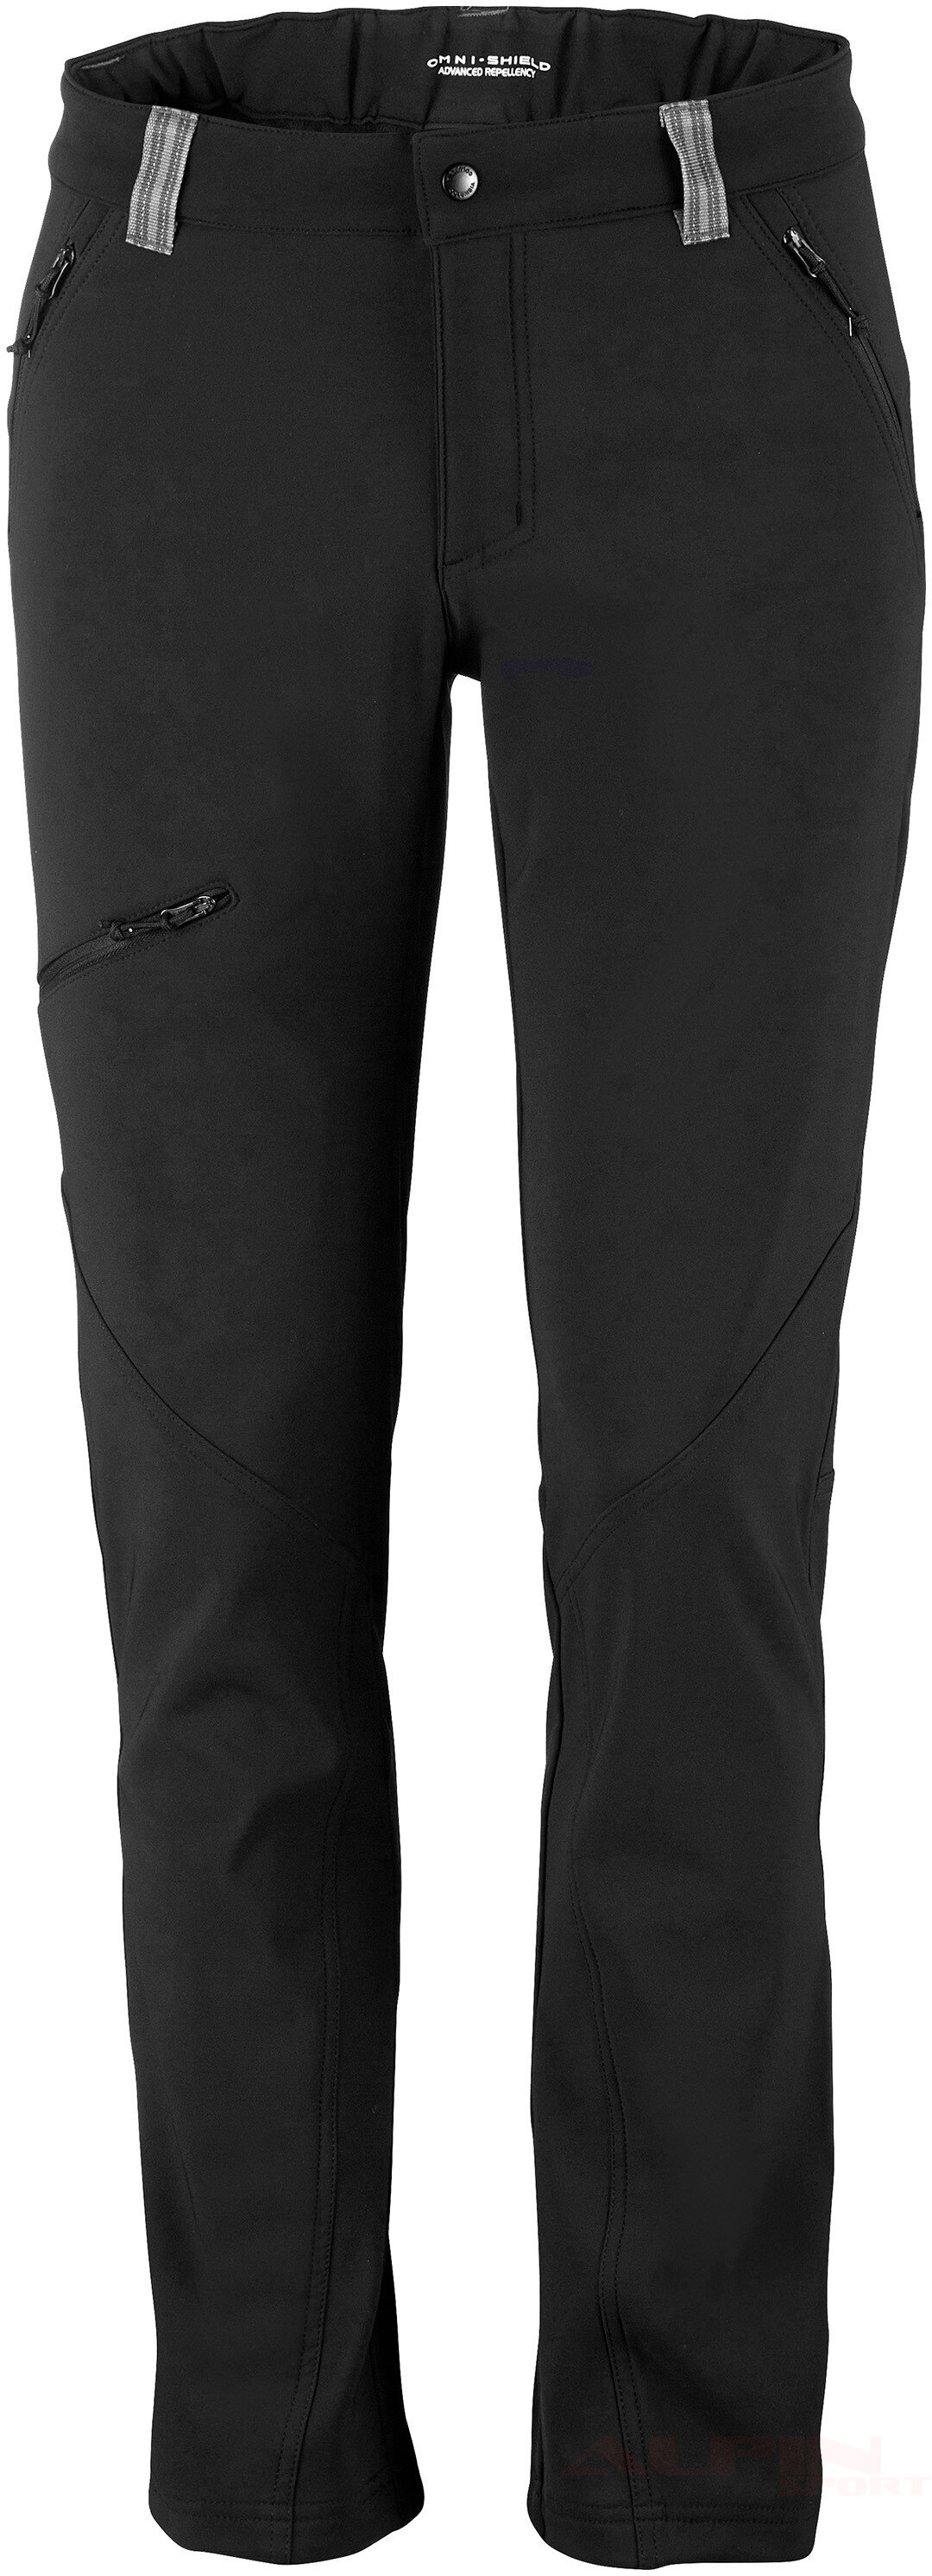 Spodnie COLUMBIA EM0054 Triple Canyon Fall Hiking  Columbia_Triple_Canyon_Fall_Hiking_Pants_Men_Black[1920x1920]